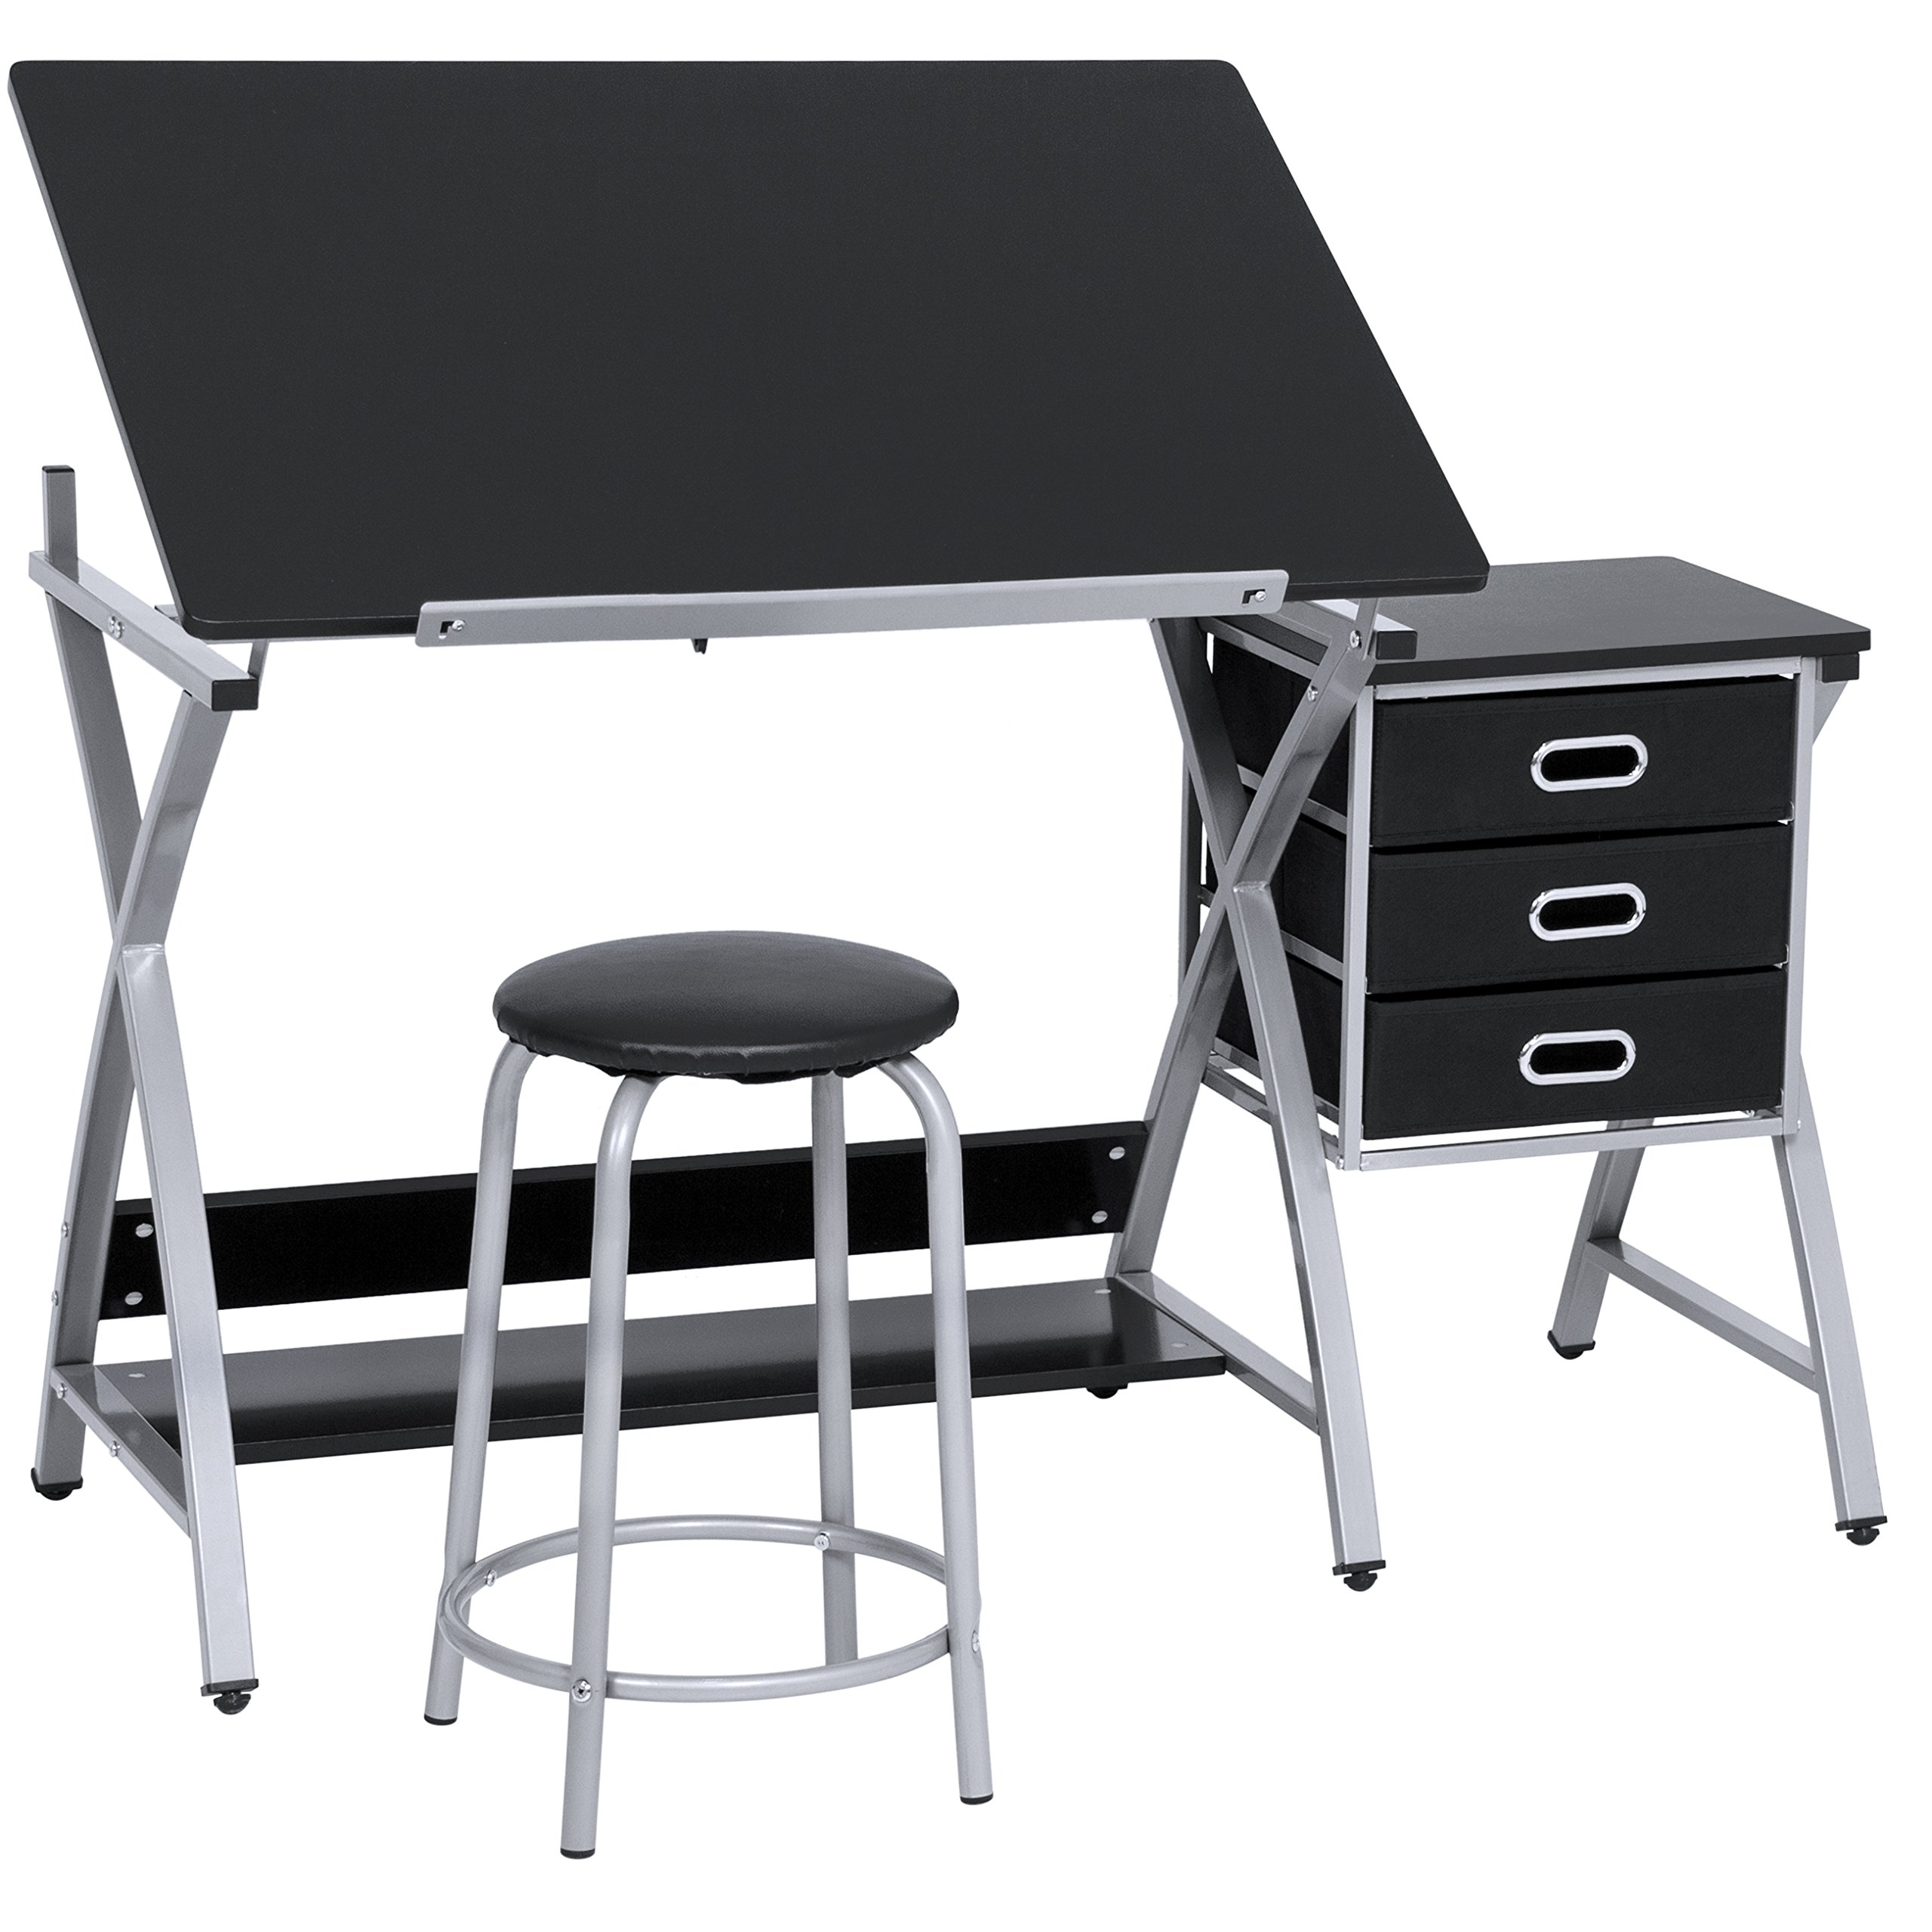 Best Choice Products Office Drawing Desk Station Adjustable Drafting Table Set W/Stool Chair